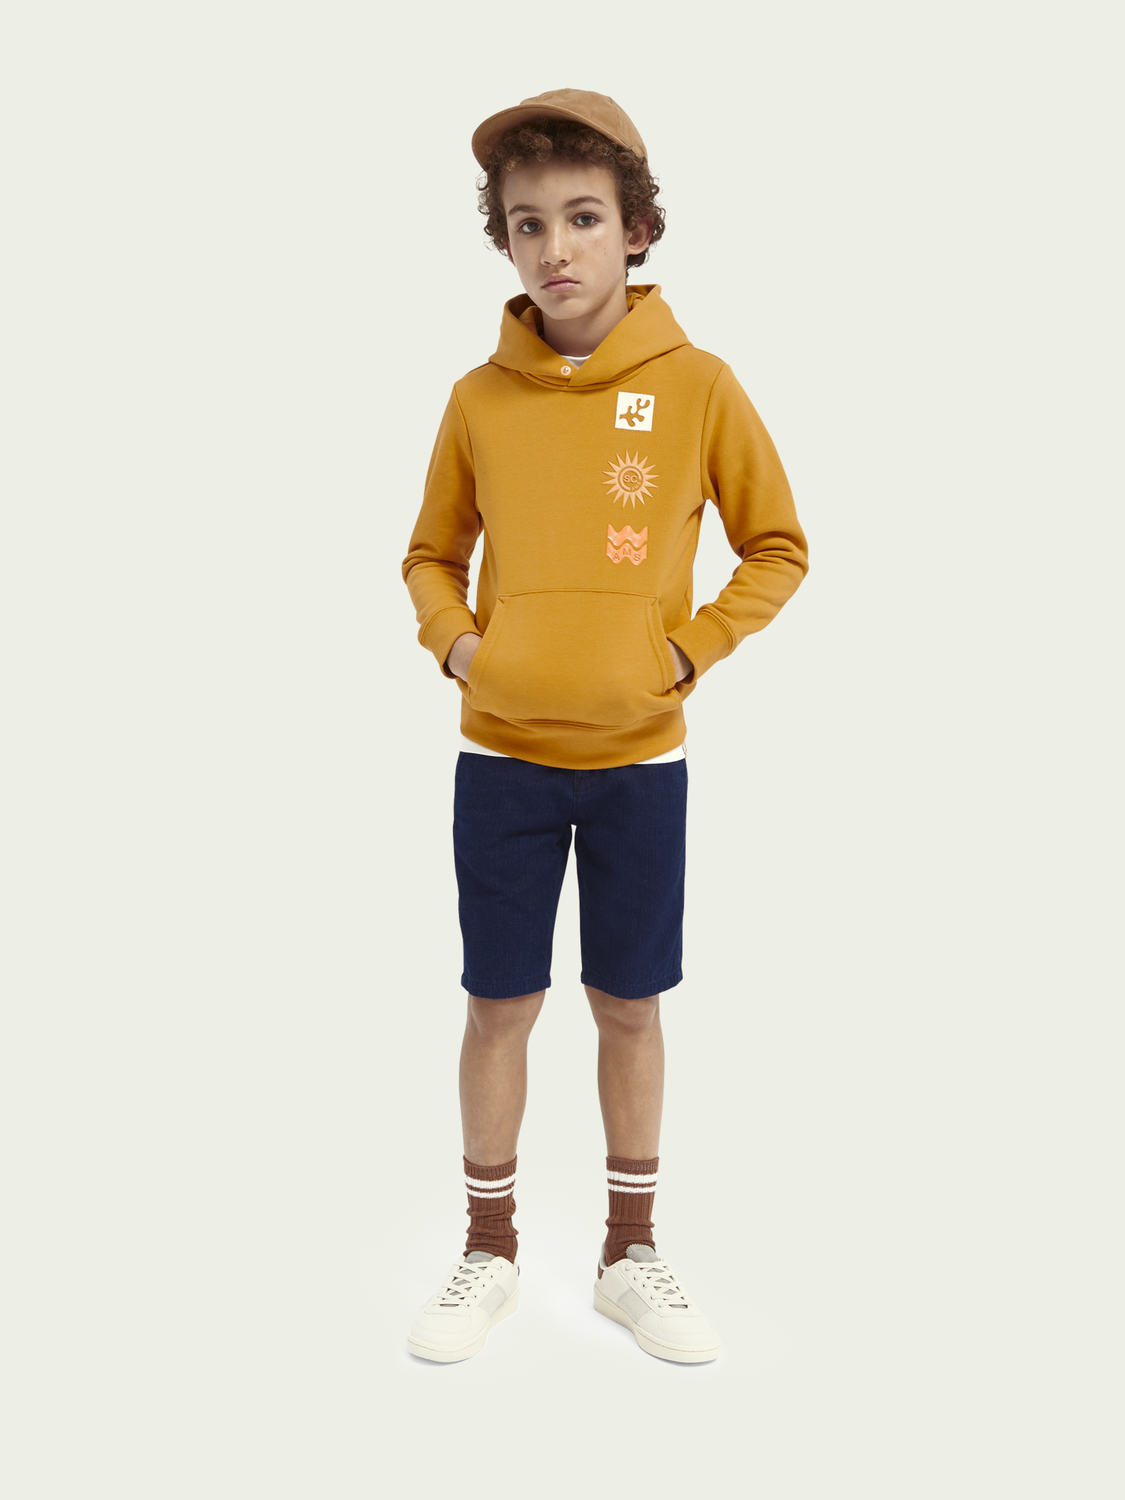 Kids Hoodie with inner collar